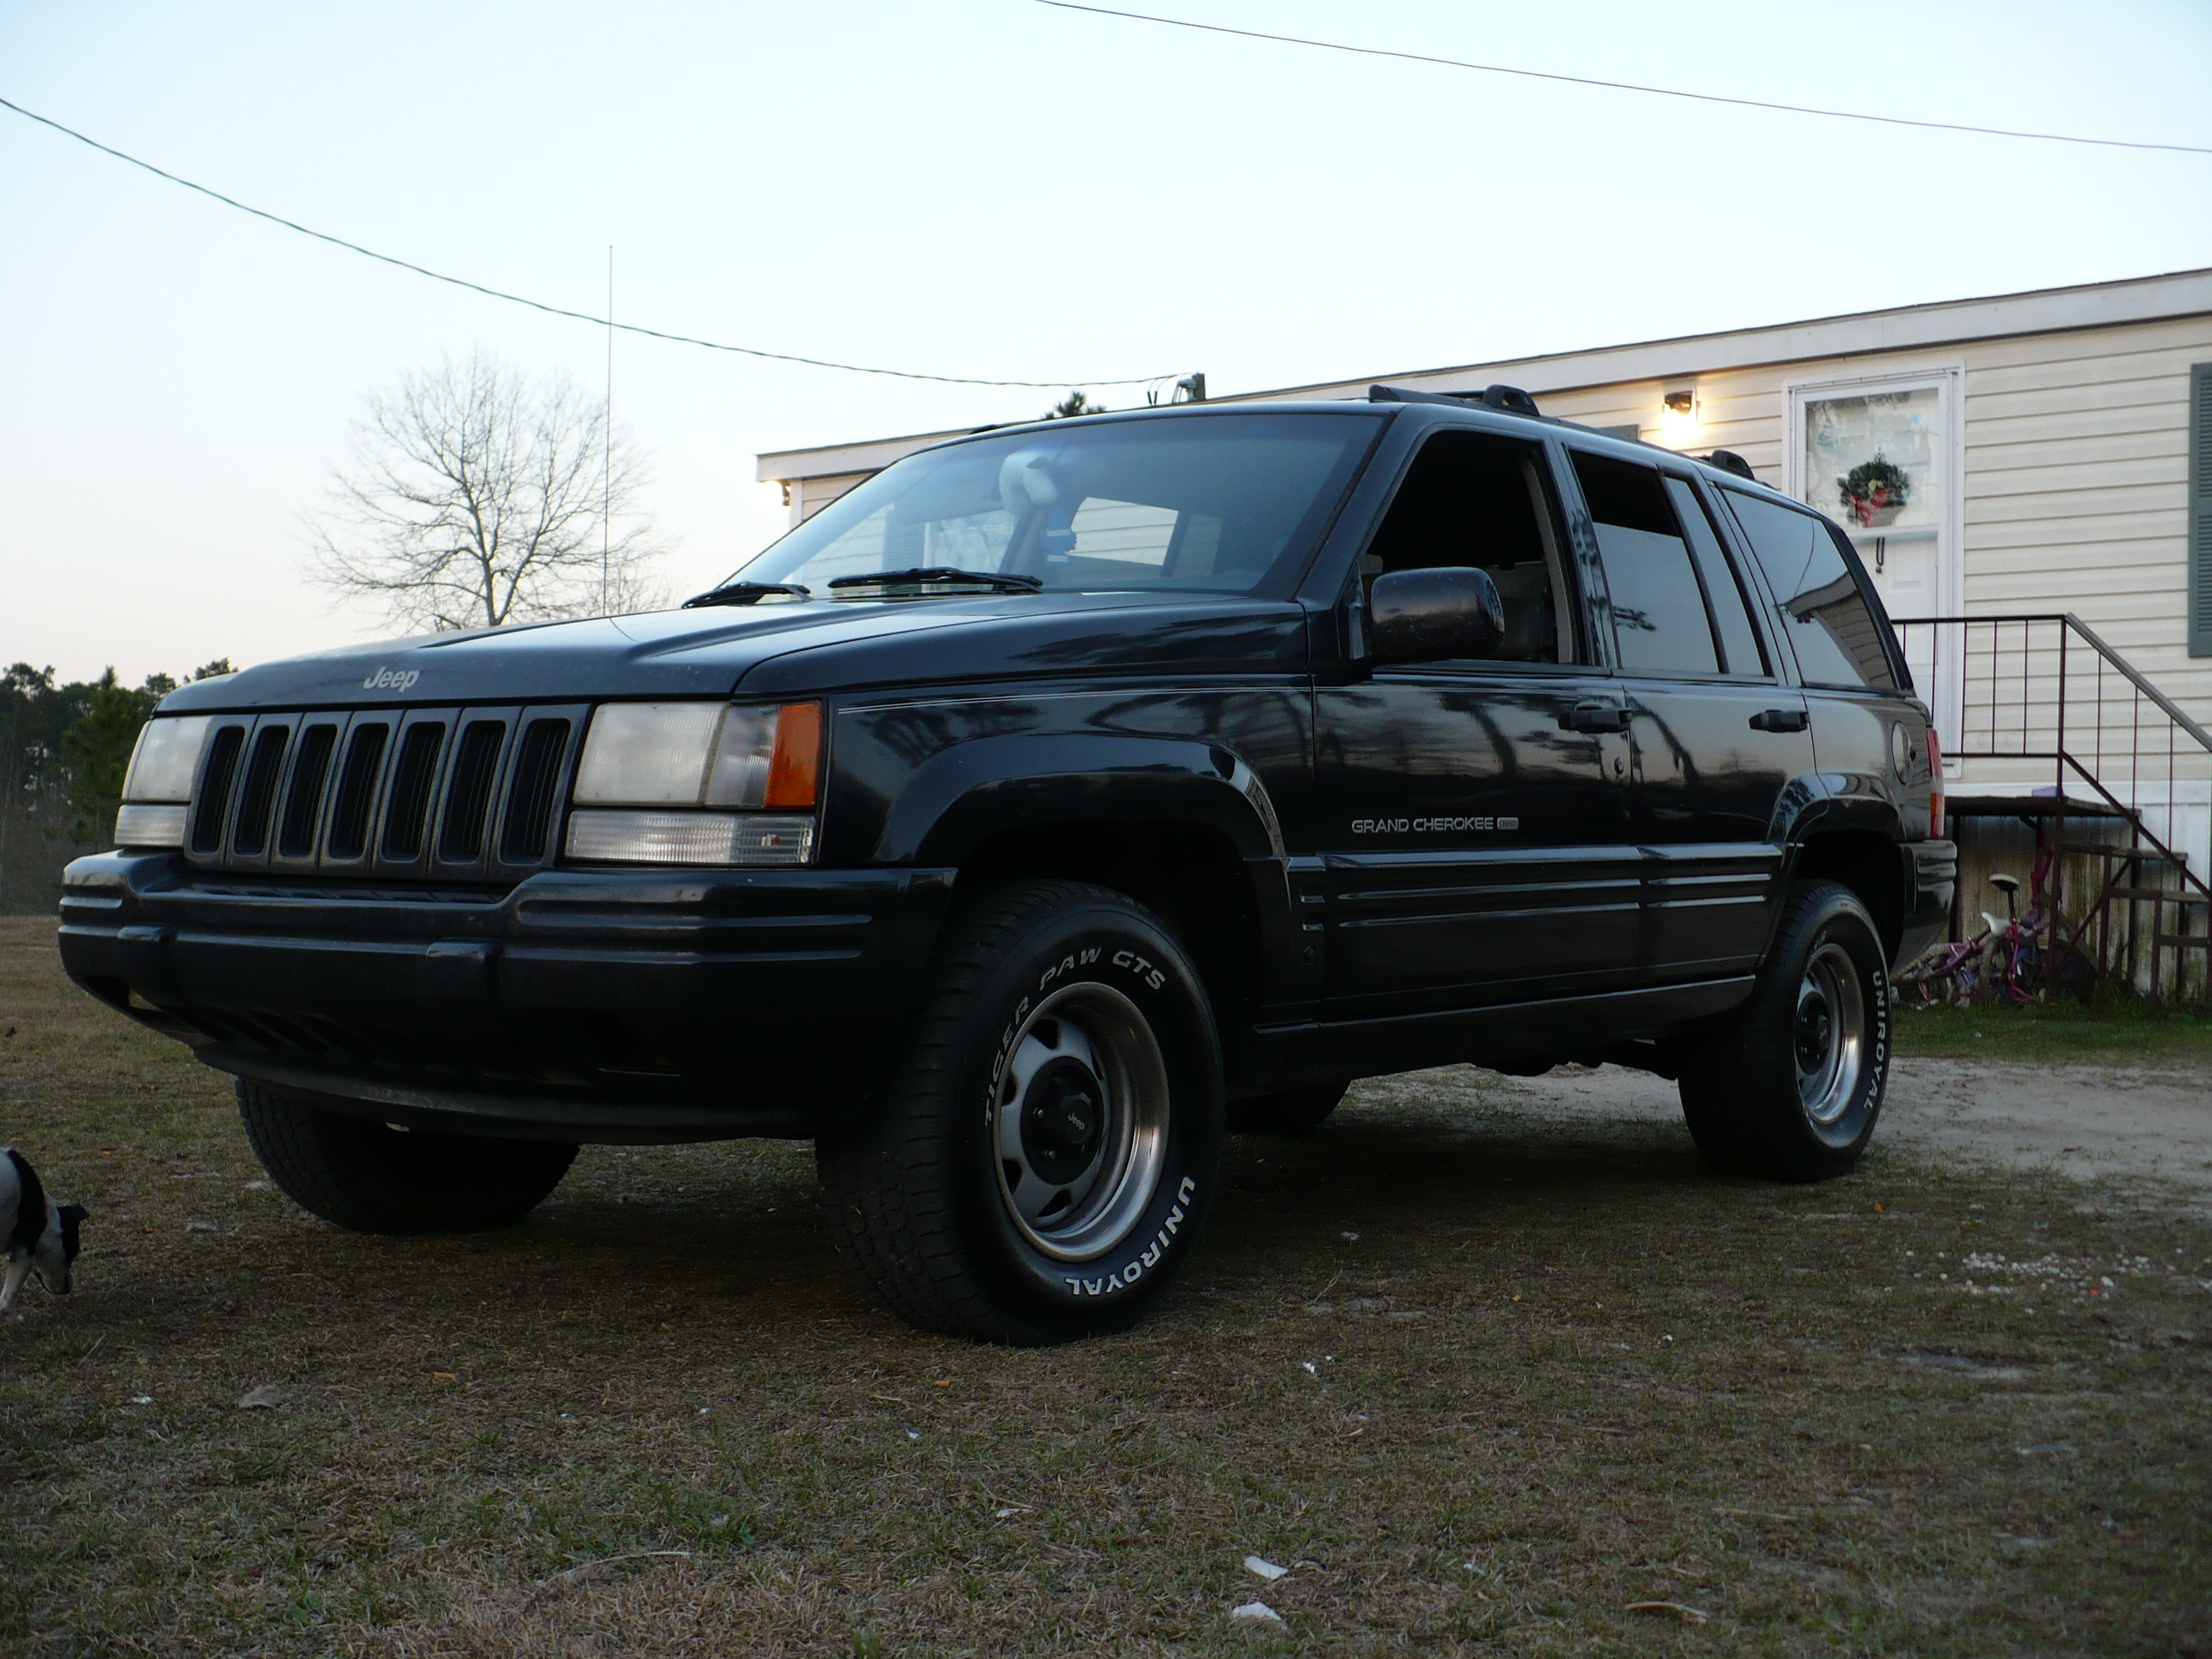 brentsjeep1 39 s 1998 jeep grand cherokee in norman park ga. Black Bedroom Furniture Sets. Home Design Ideas